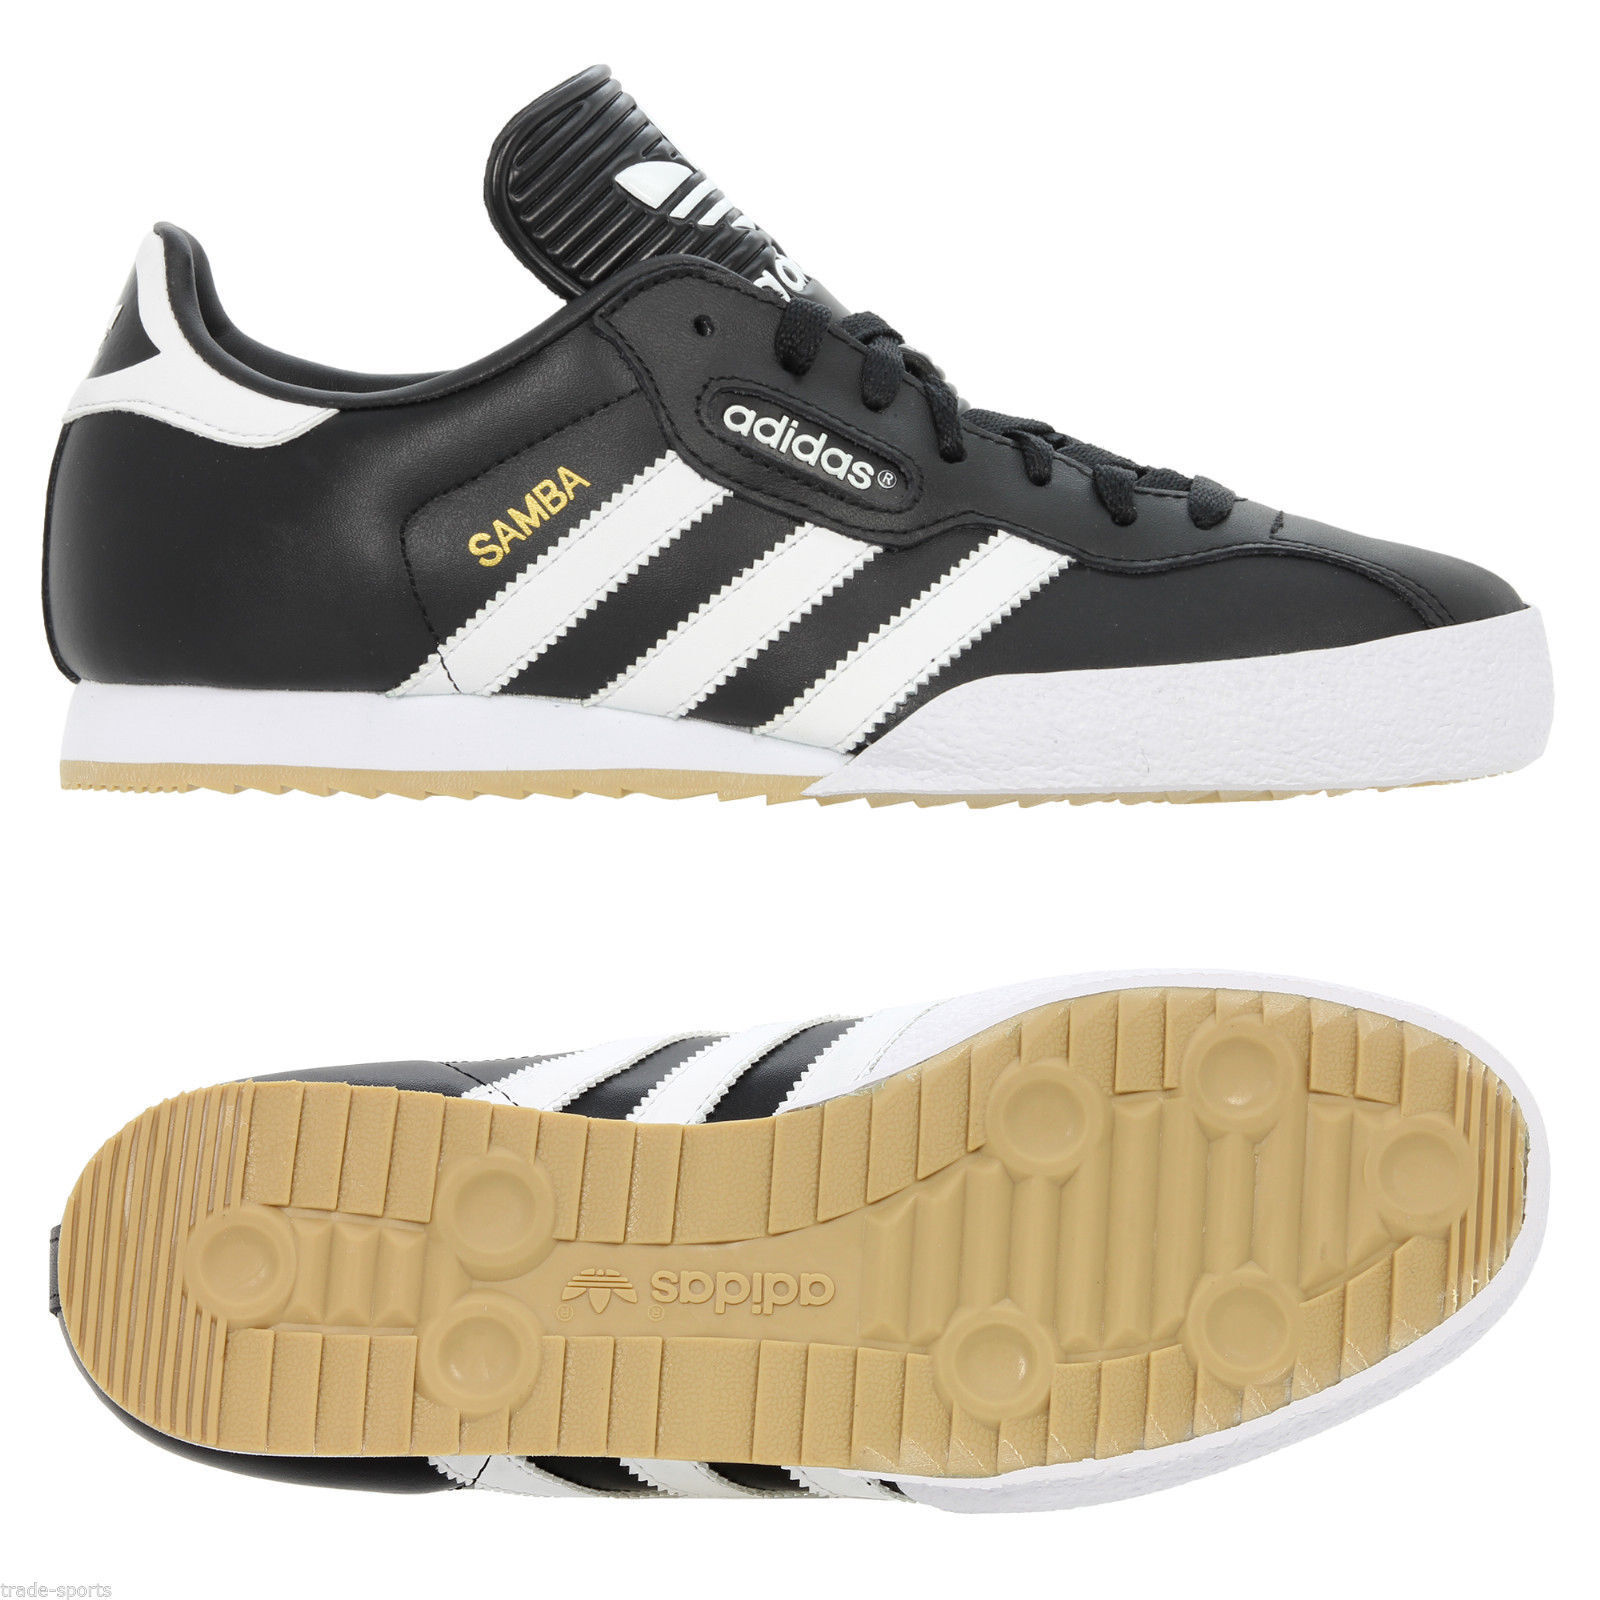 Adidas ORIGINALS MENS SAMBA 7 SUPER TRAINERS BLACK SIZES 7 SAMBA 8 8.5 9 9.5 10 11 12 b3ab42